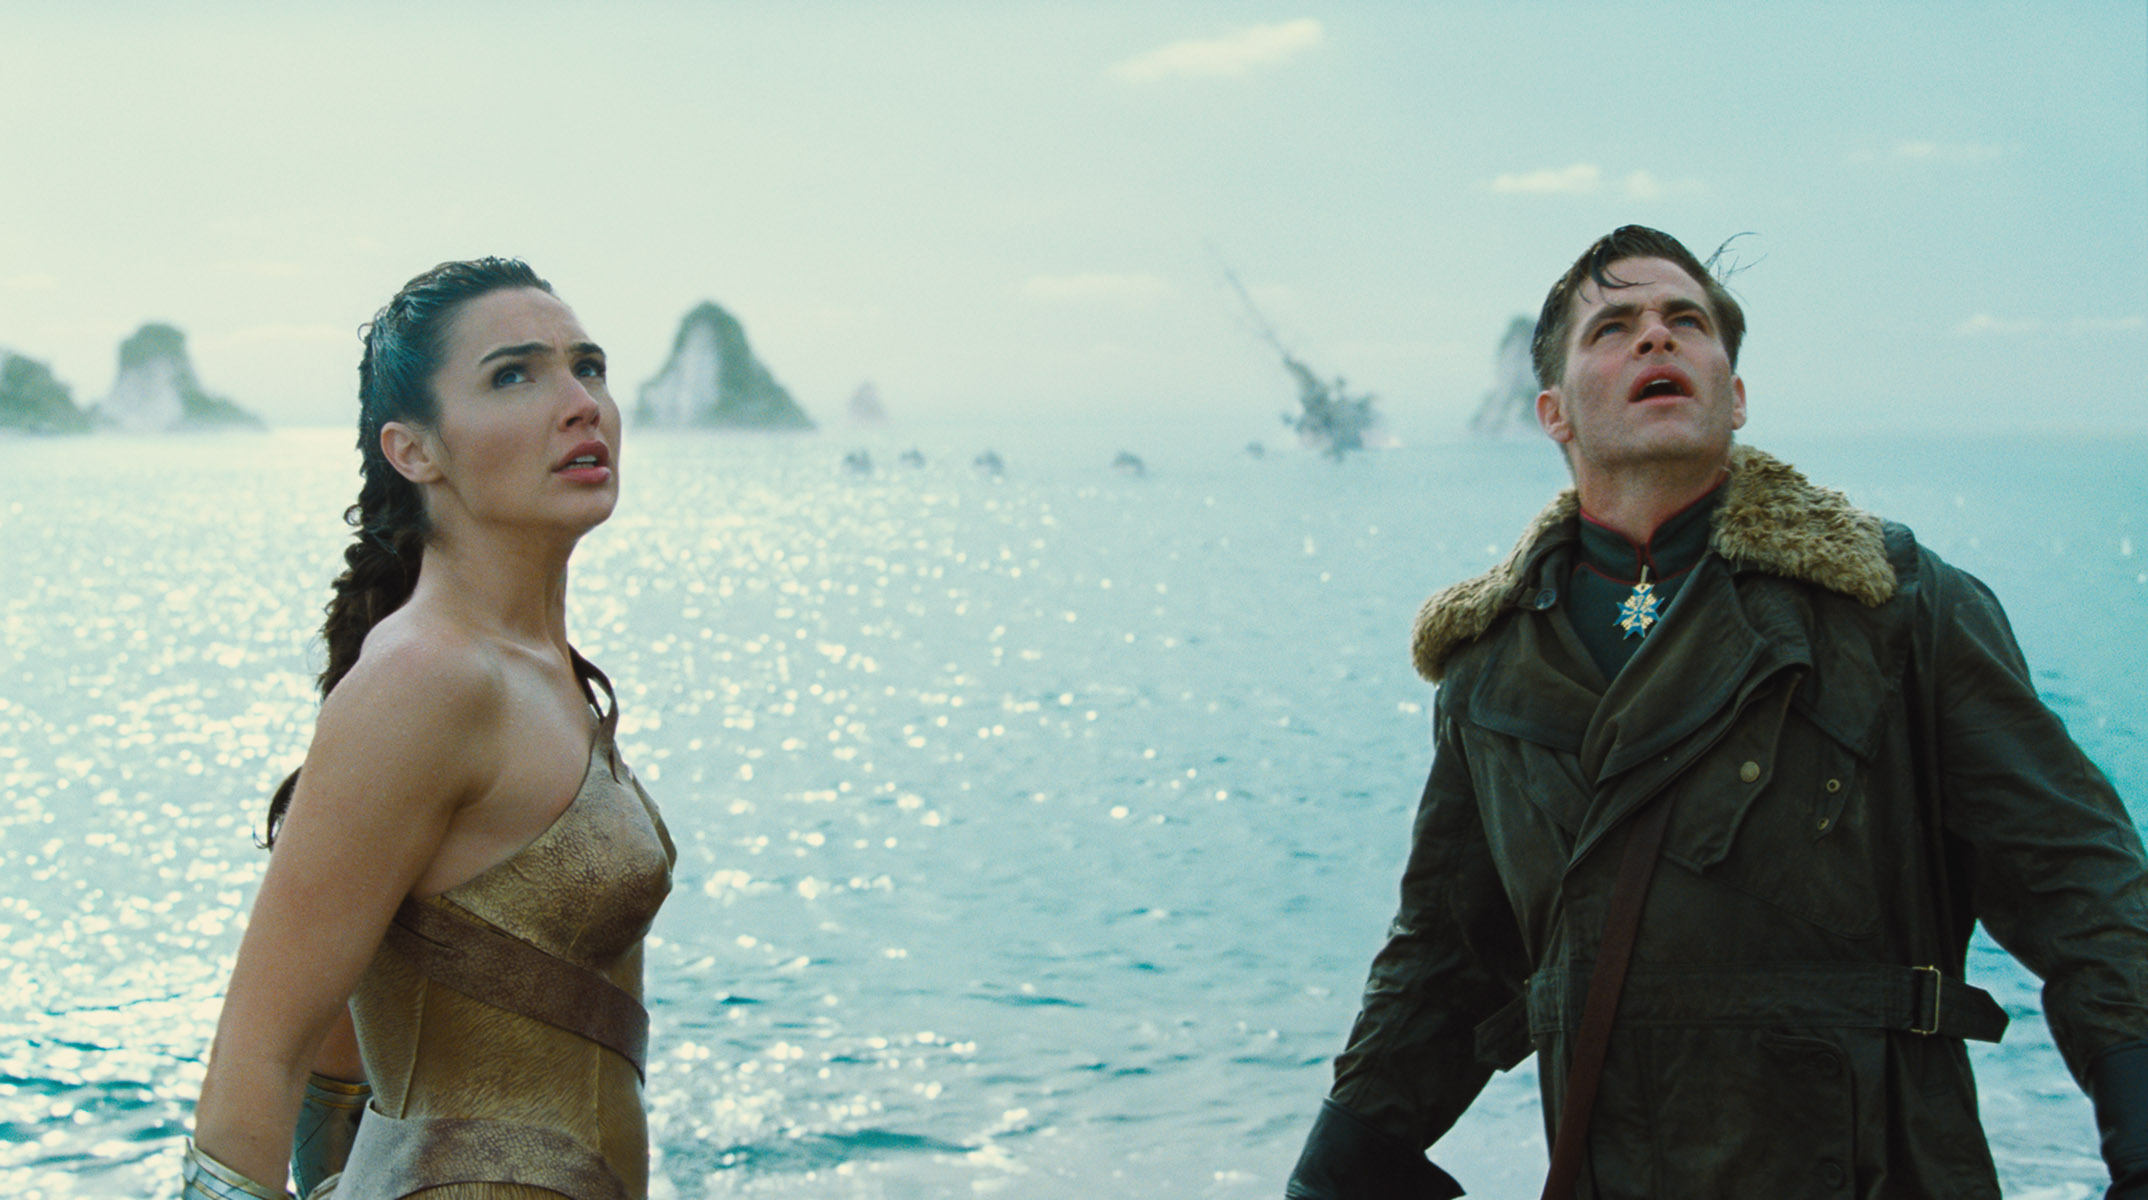 Wonder Woman: New Photos Of Gal Gadot And Chris Pine In